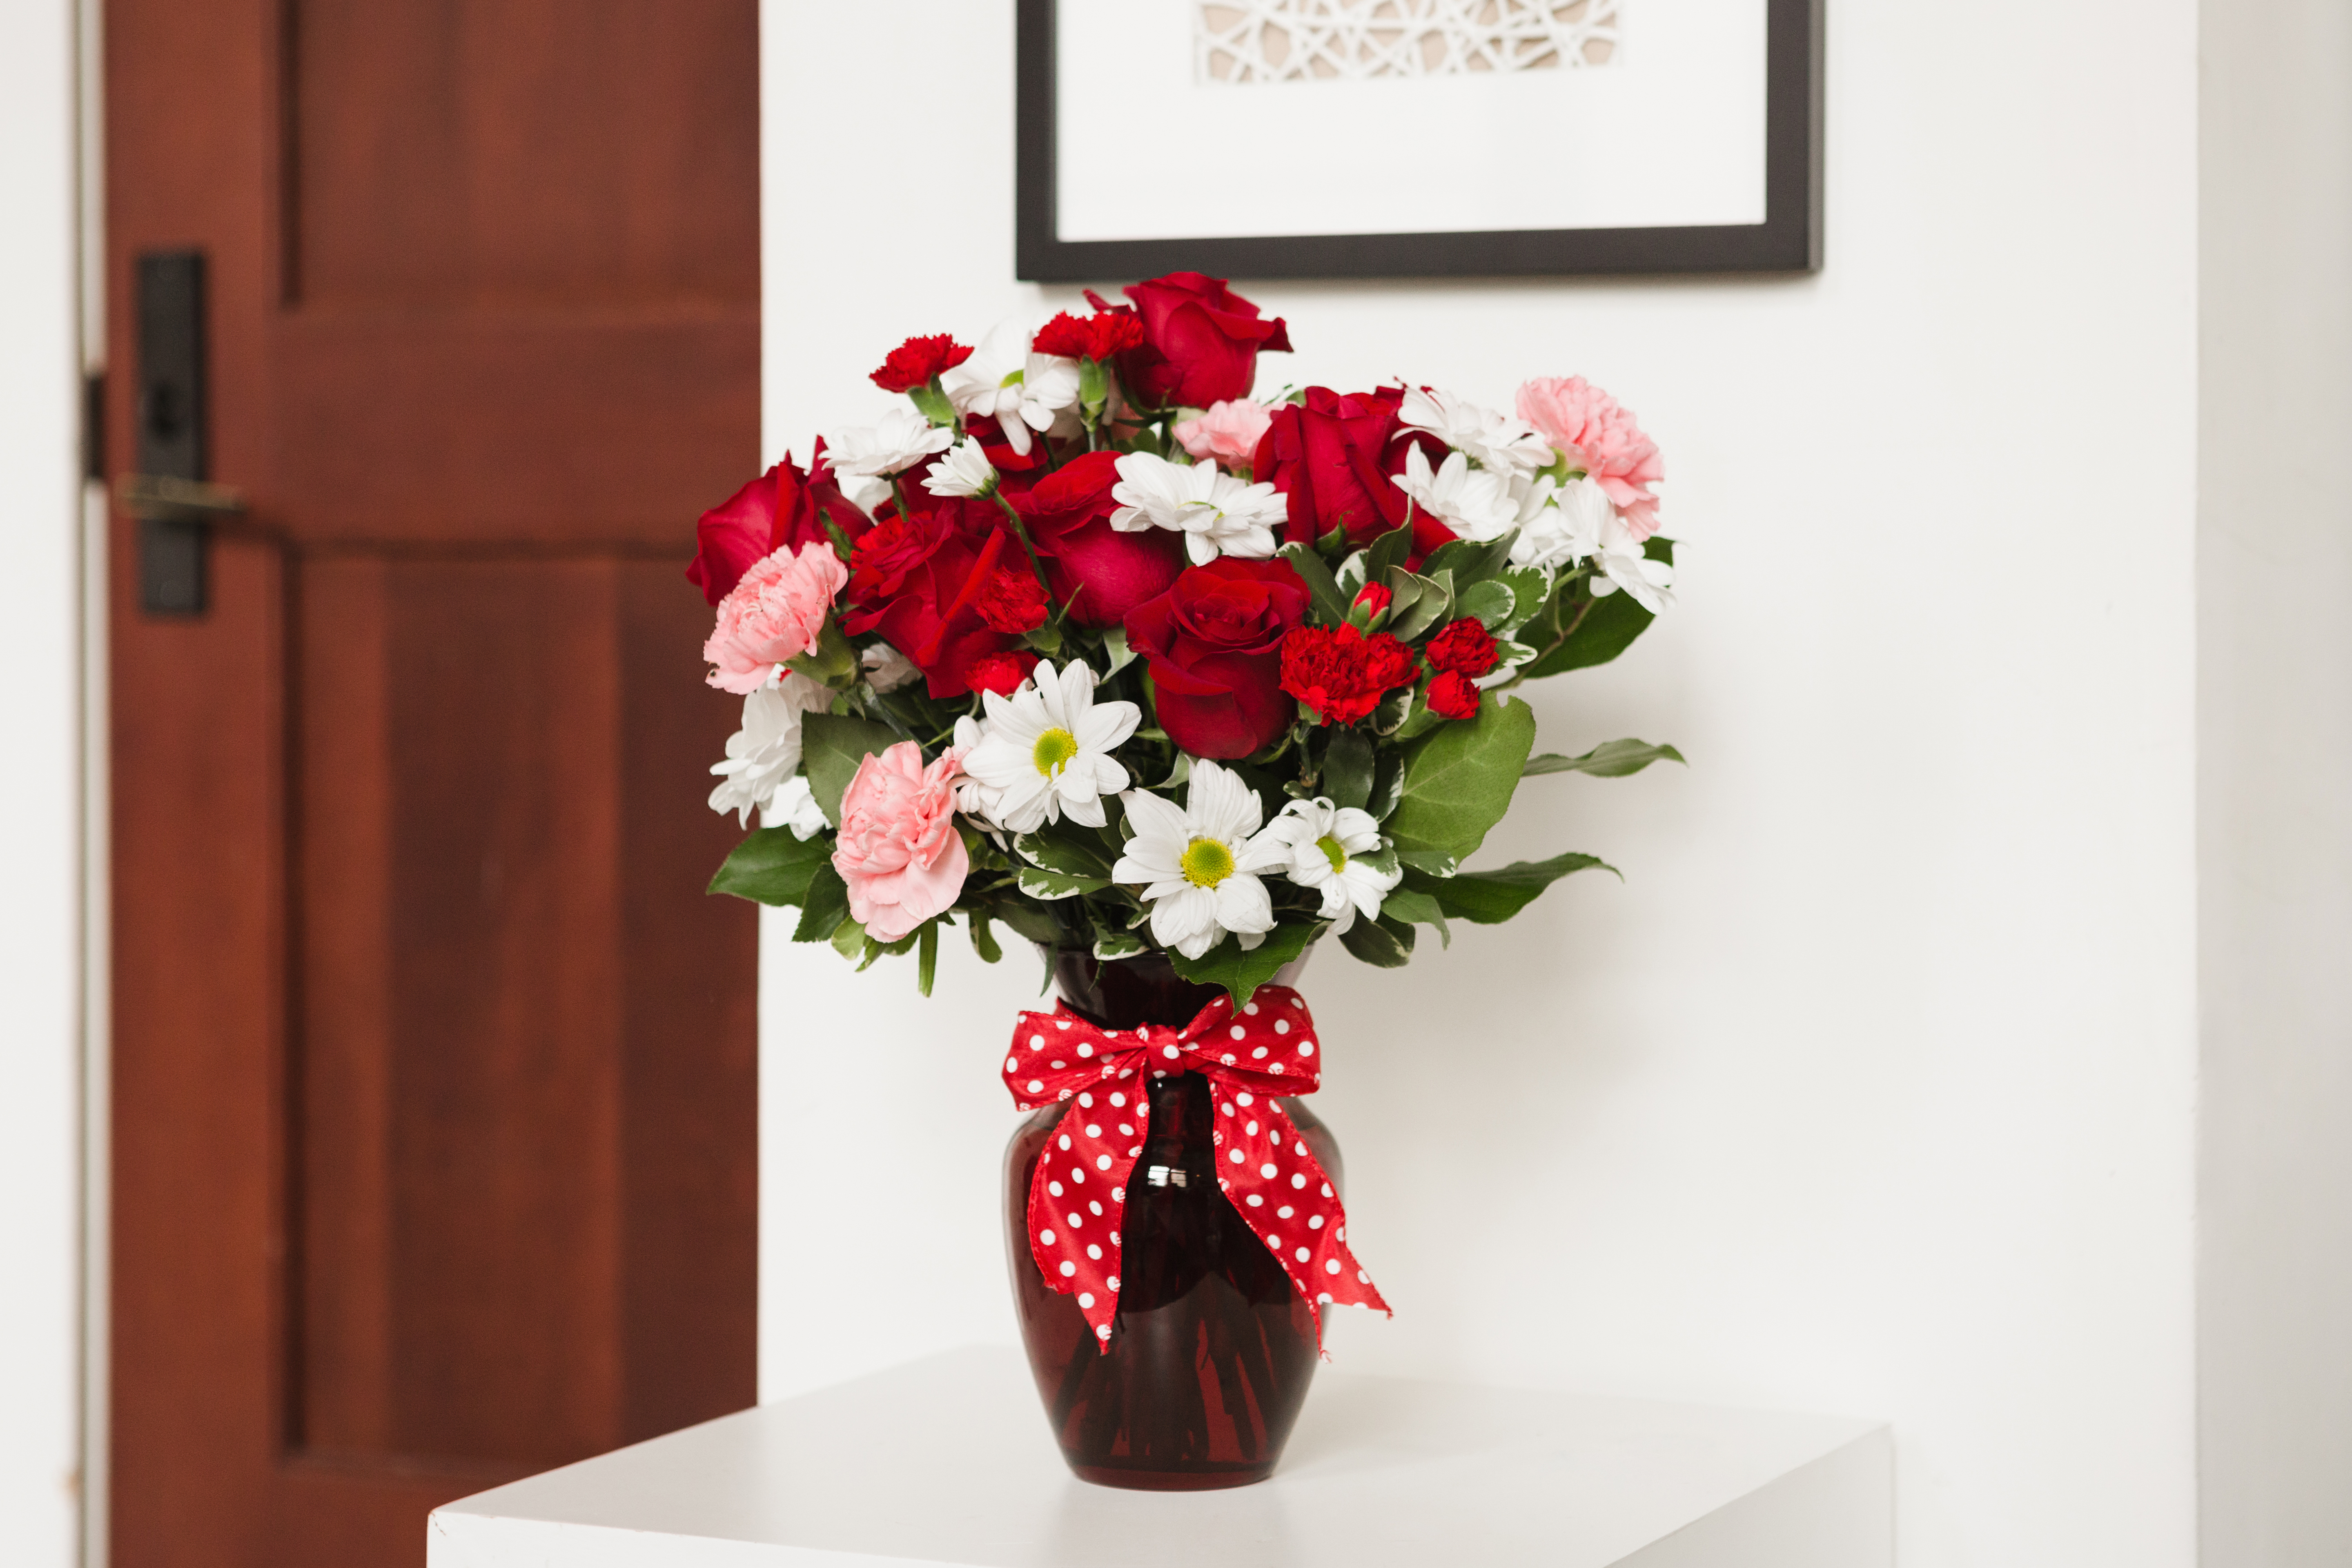 red roses, pink carnations, white daisies, and more in a red vase on a white table